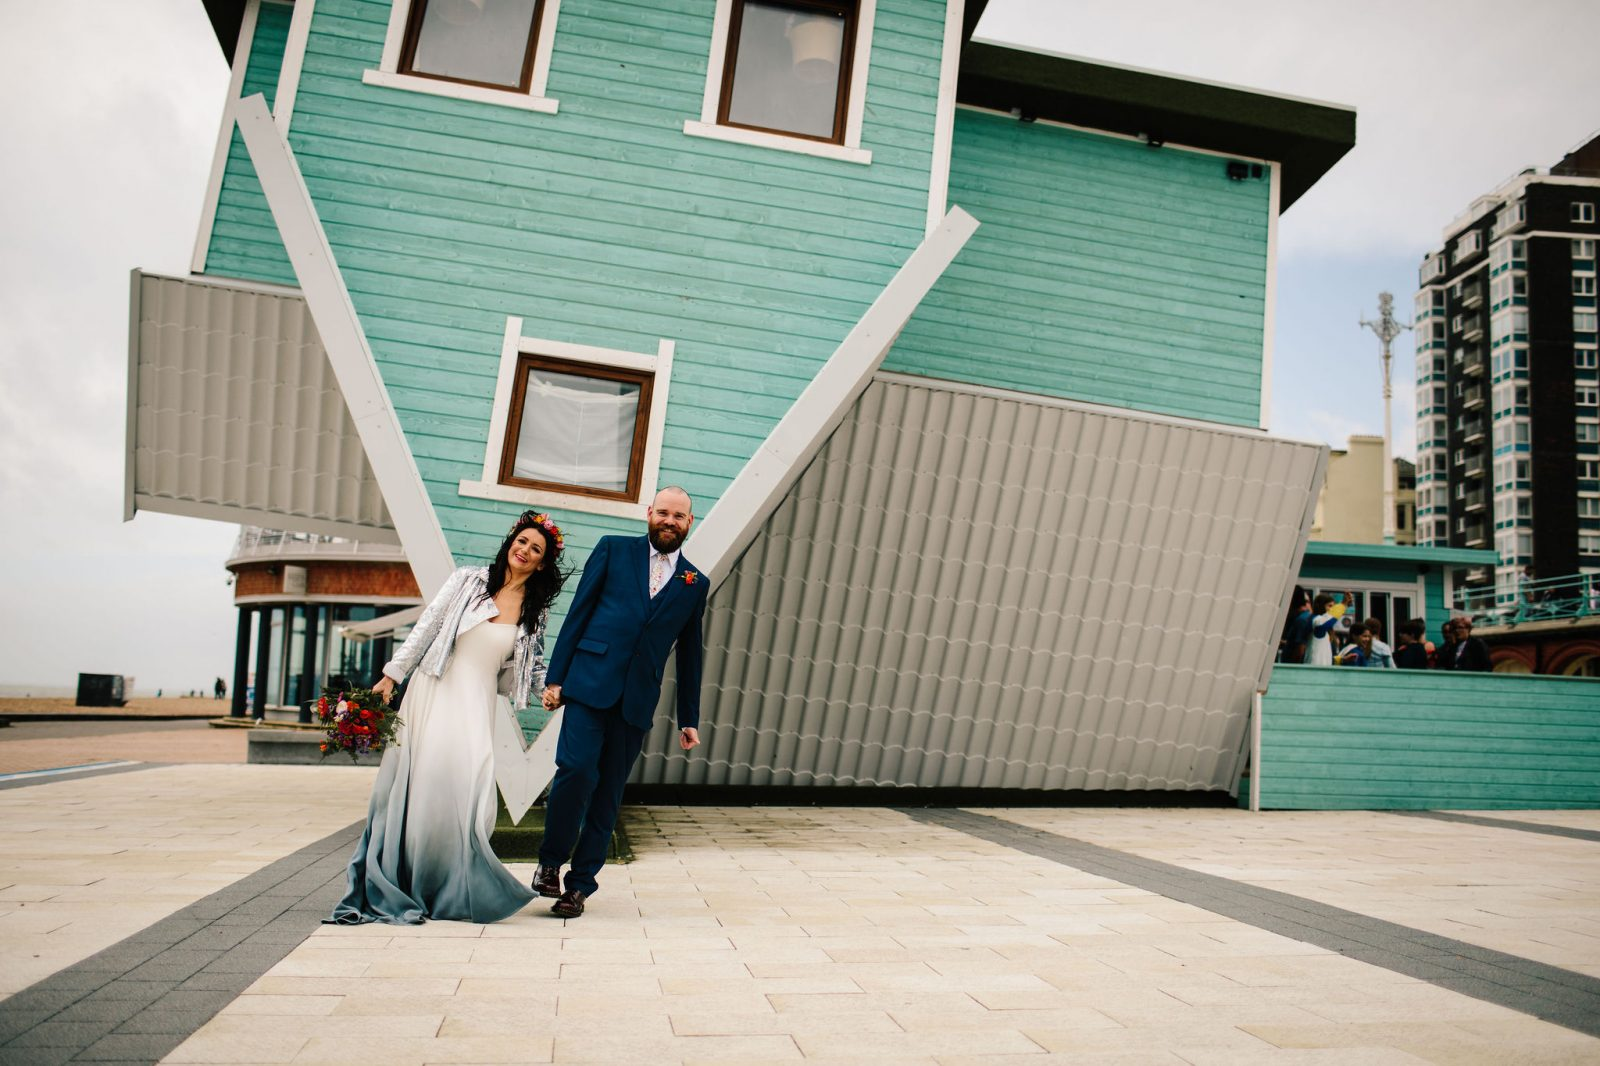 upside down house Brighton wedding